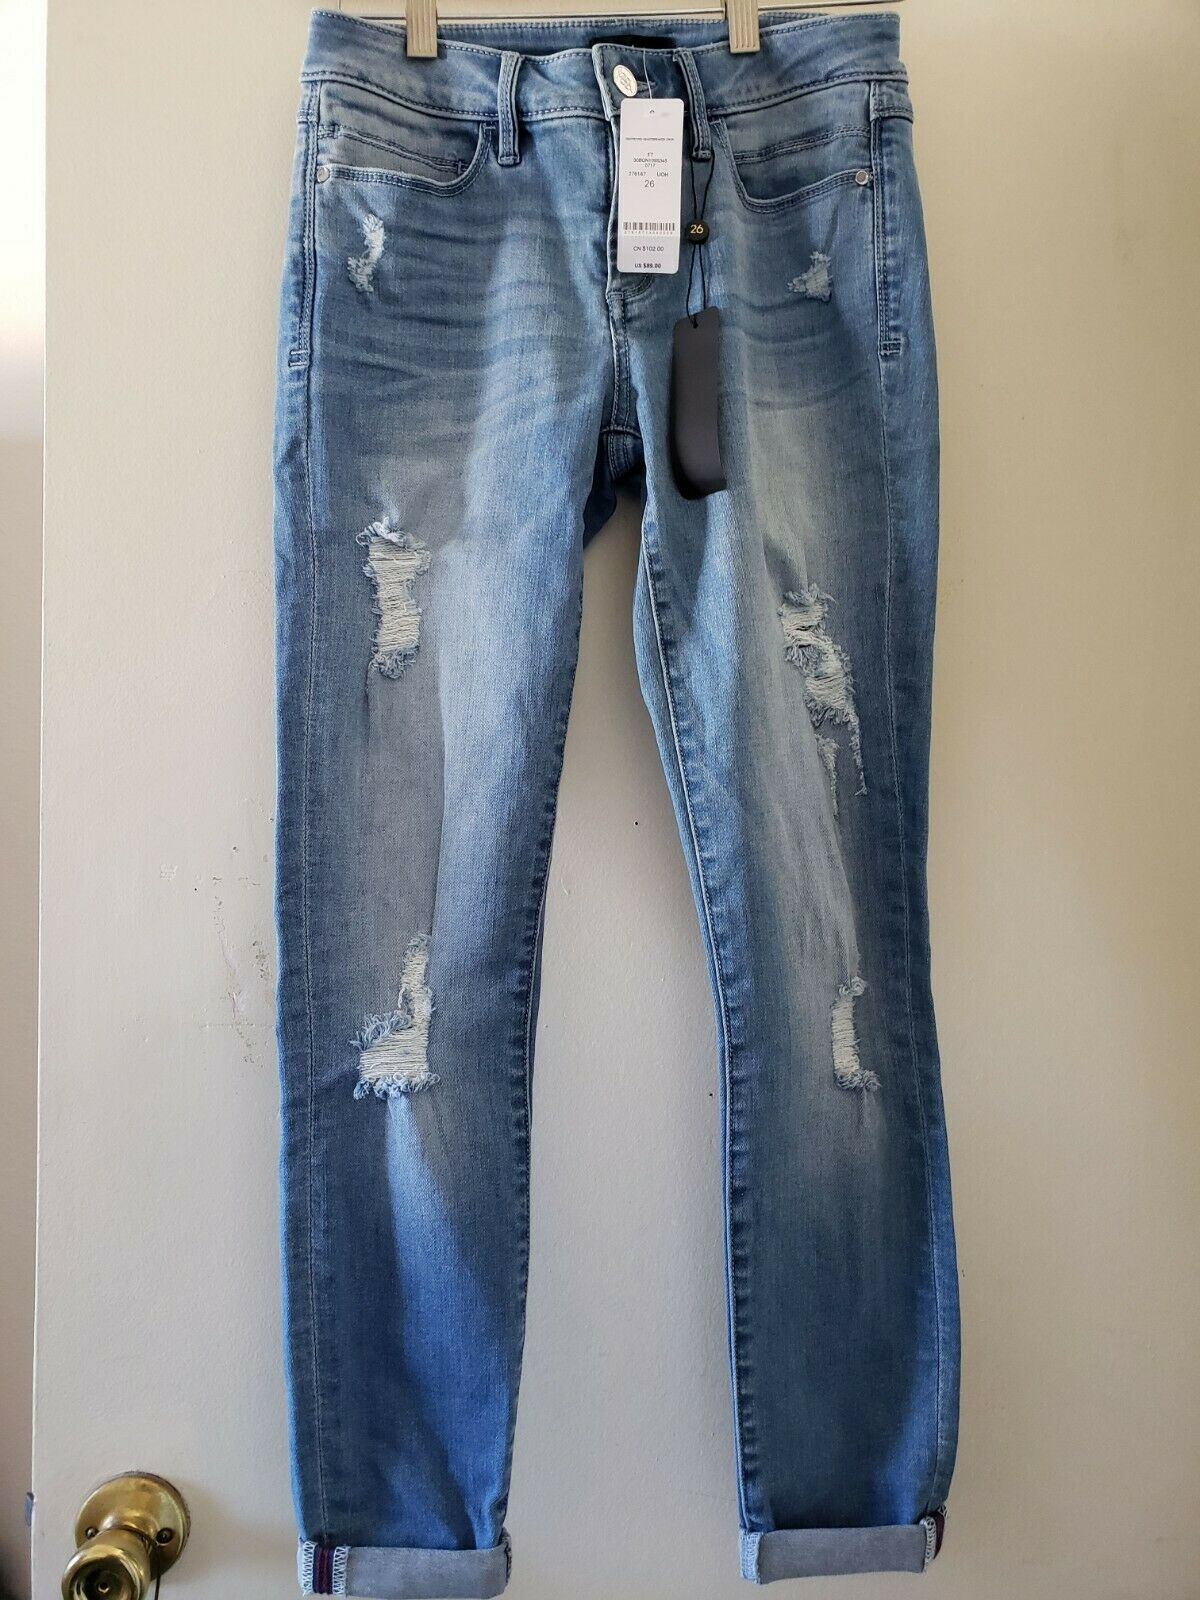 BEBE Destroyed Heartbreaker Skinny Cropped Jeans, Size 26, NWT